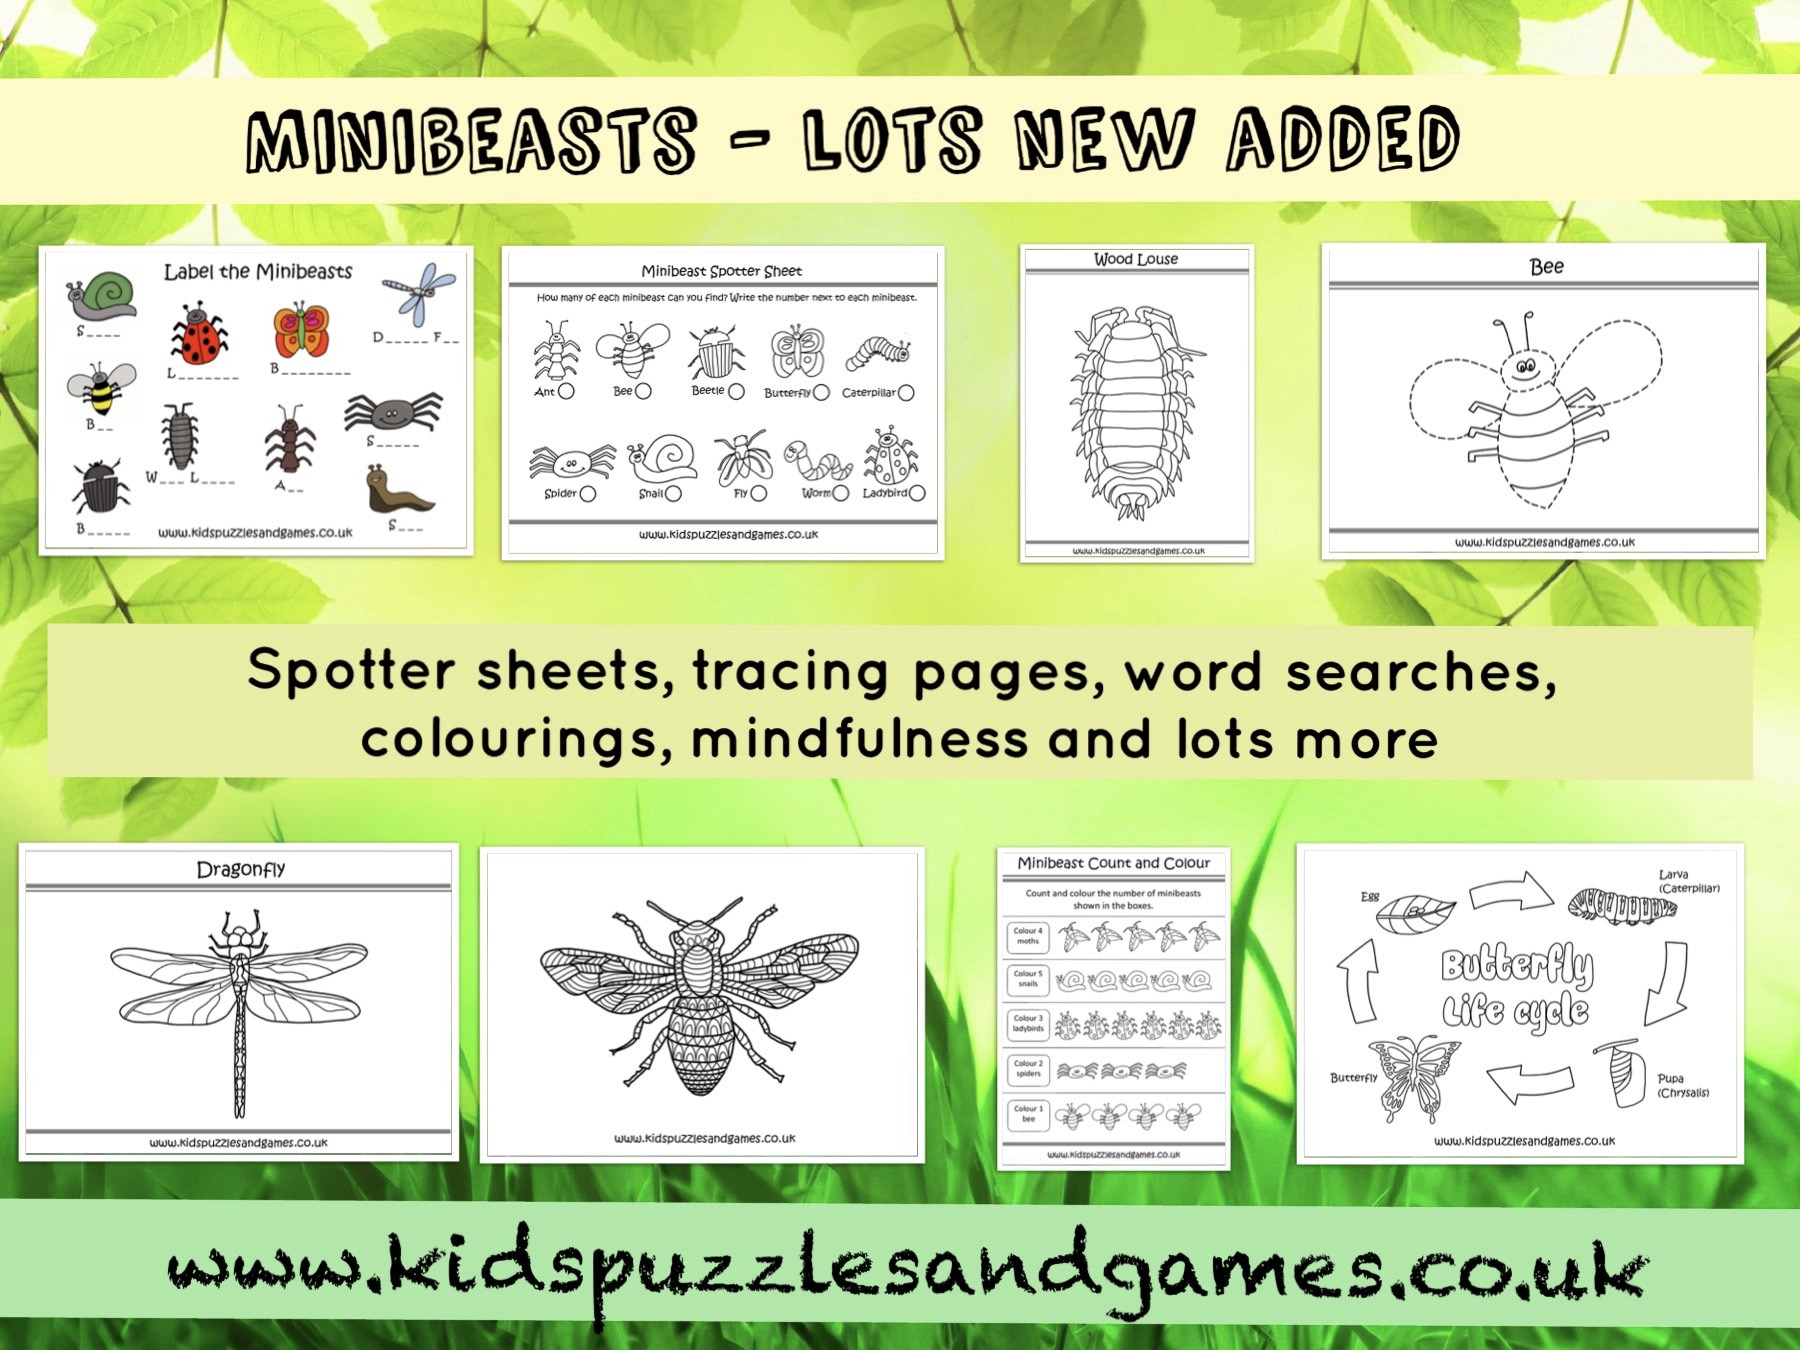 More Added To Our Popular Minibeasts Theme